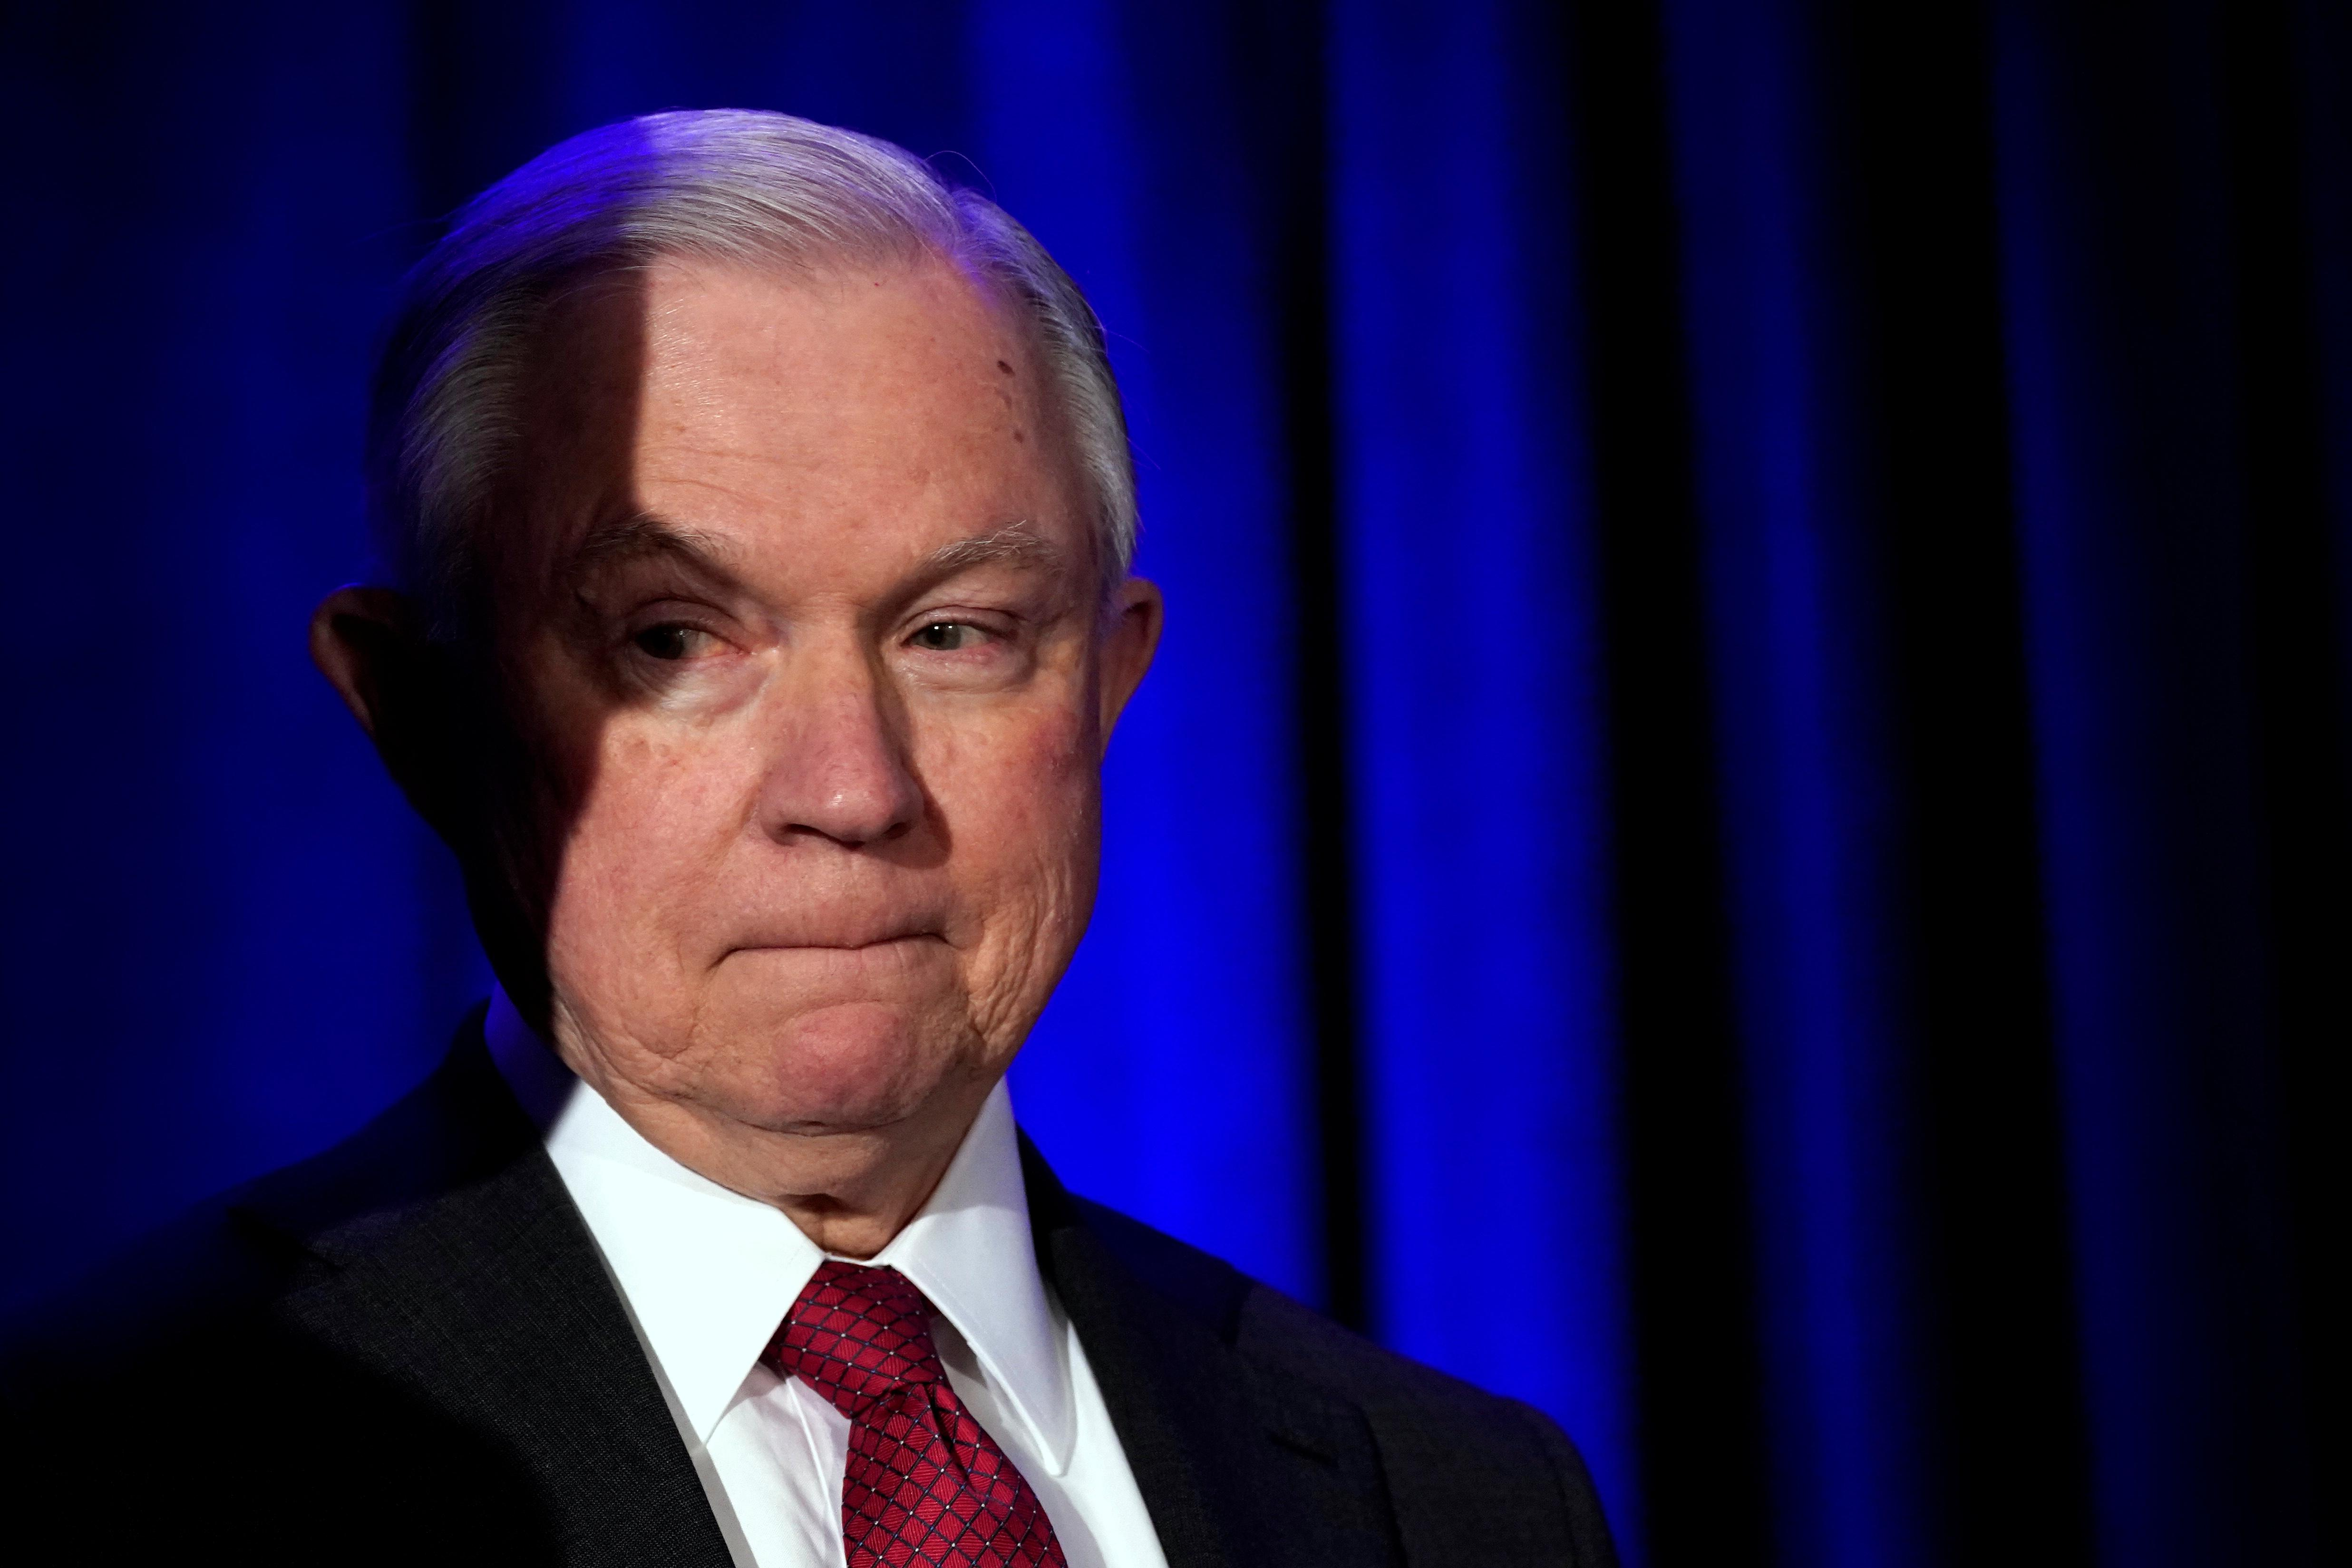 U.S. Attorney General Jeff Sessions attends the National Sheriffs Association Winter Conference in Washington, U.S., February 12, 2018. Yuri Gripas